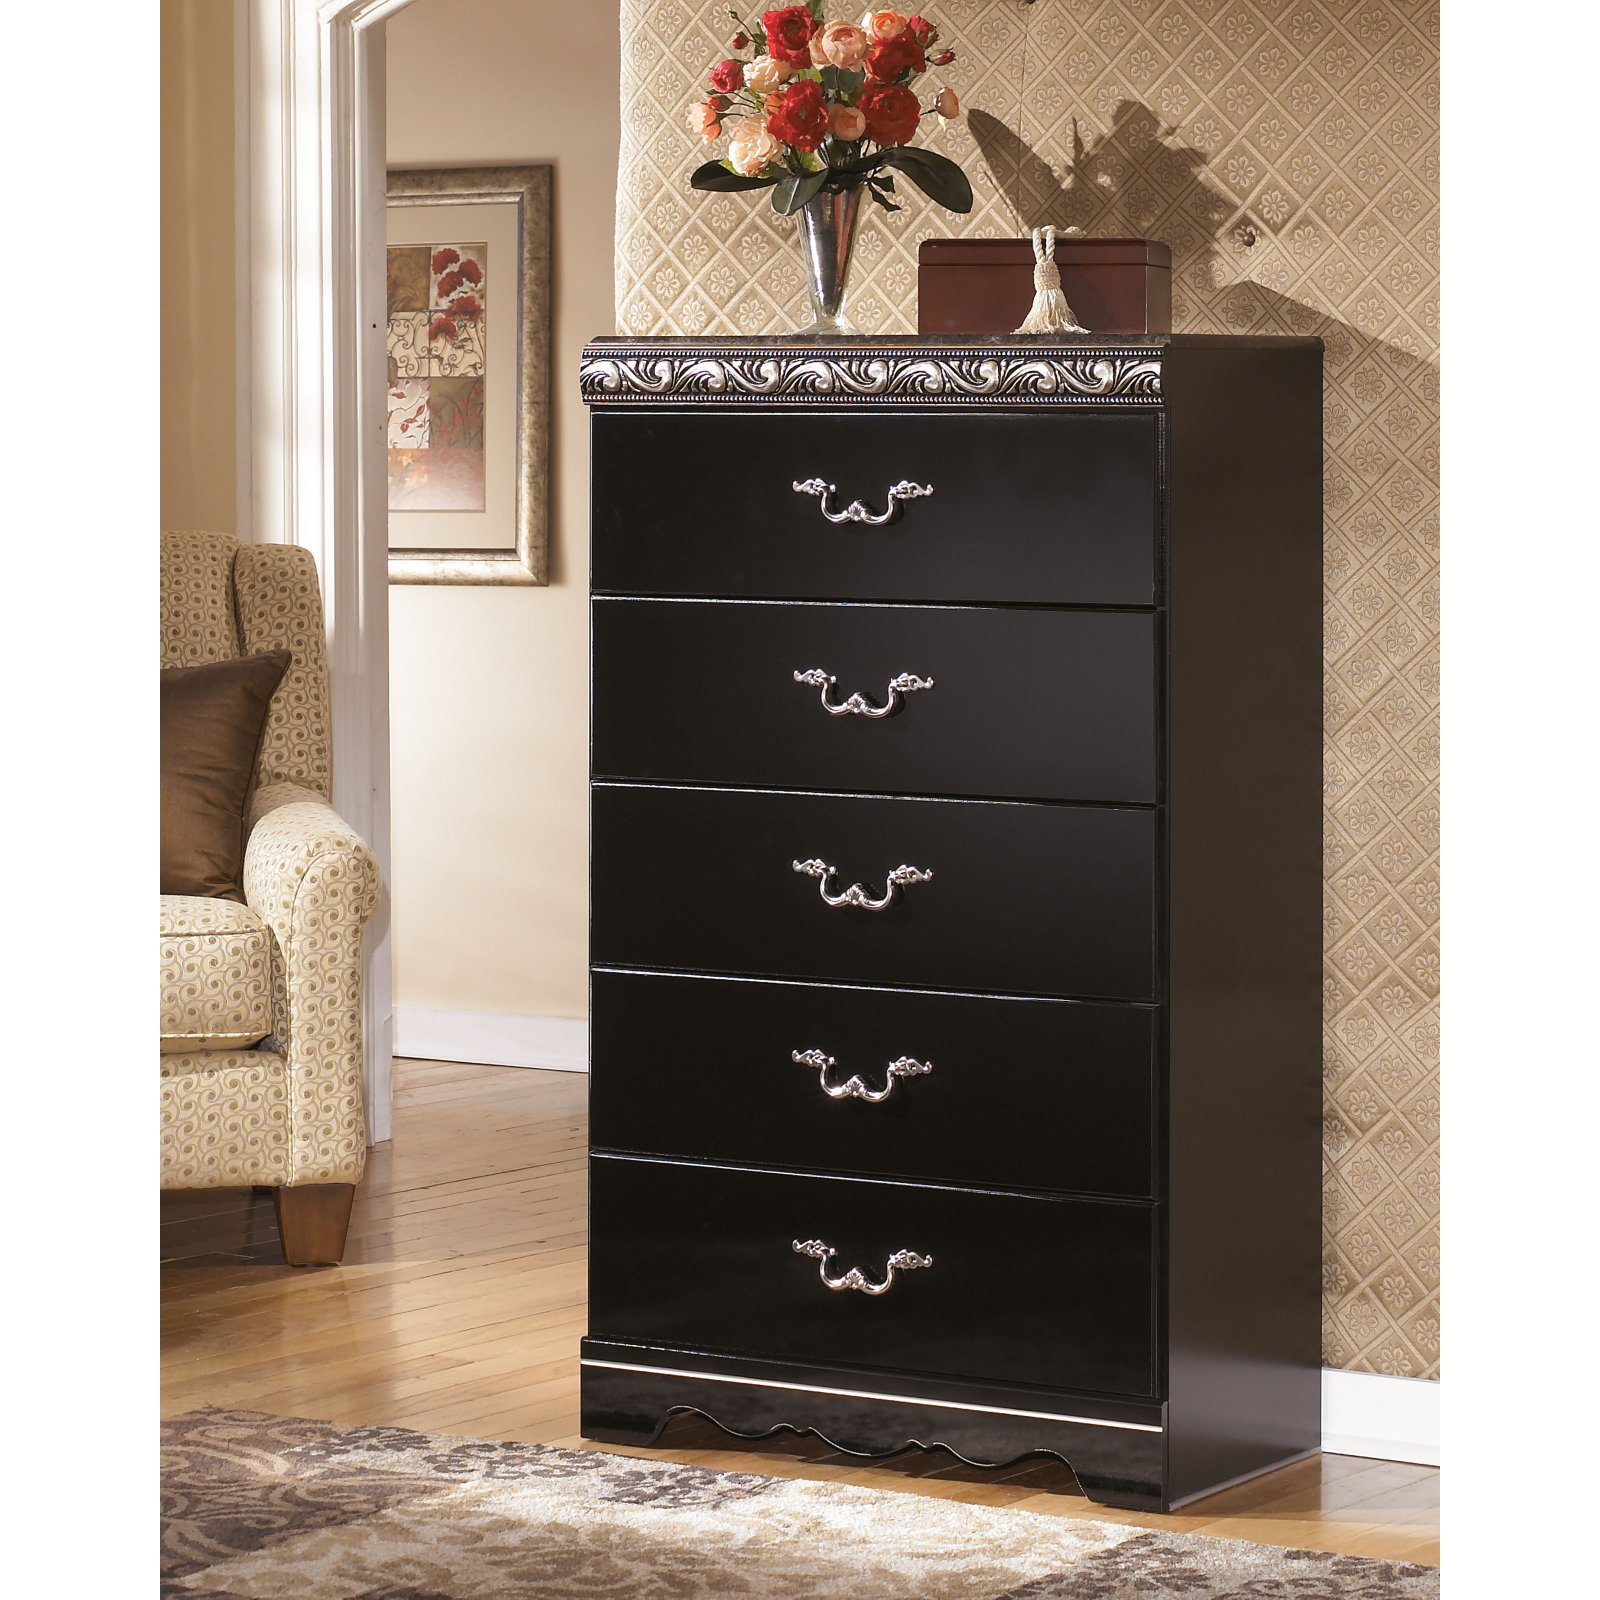 Signature Design by Ashley Constellations 5 Drawer Chest